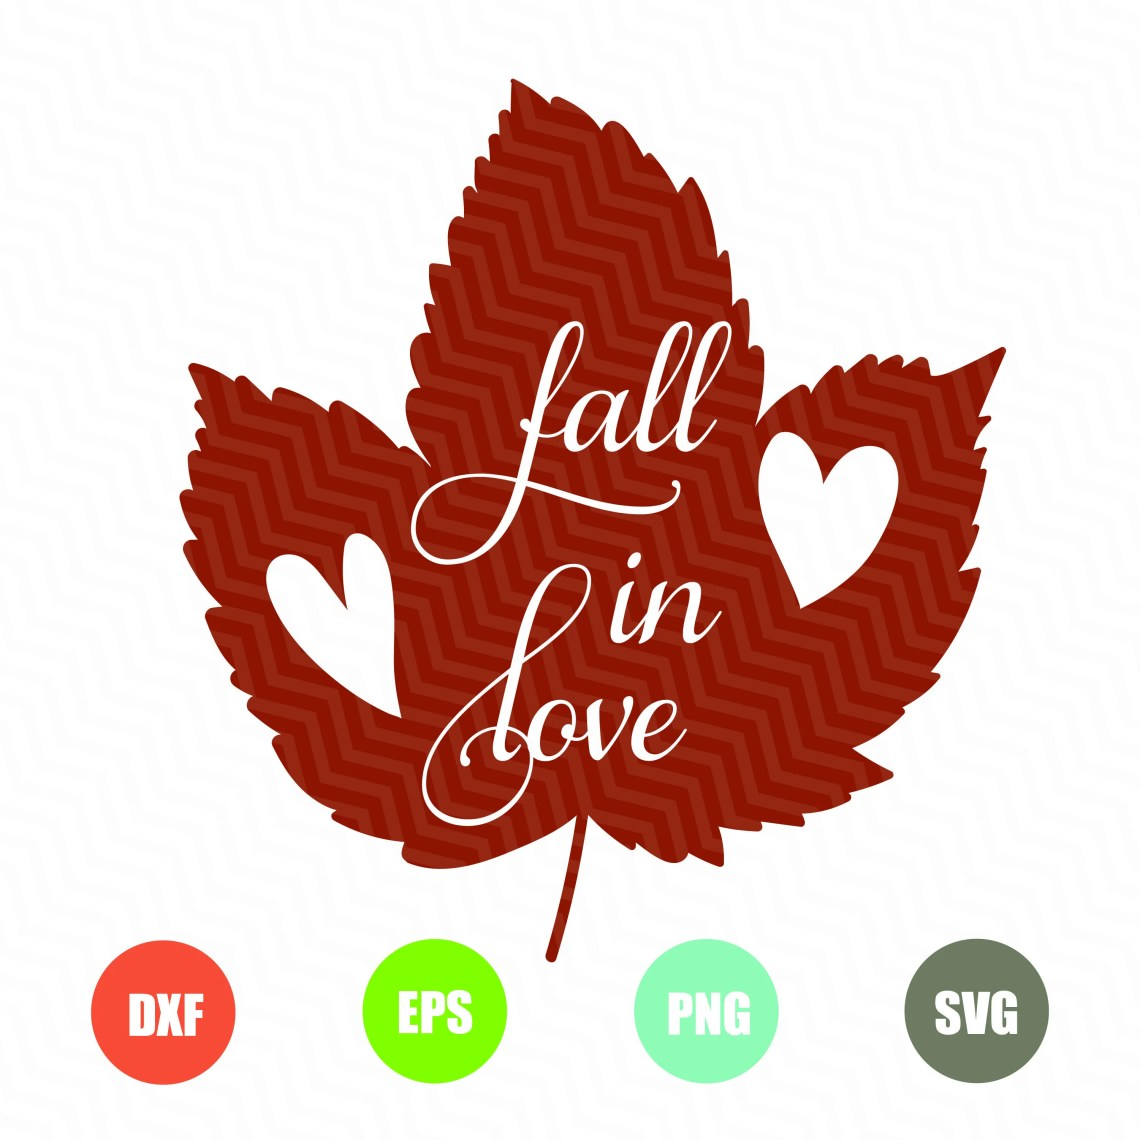 Download Fall in Love Svg Fall in Love Sign Svg Fall svg Fall Sign ...